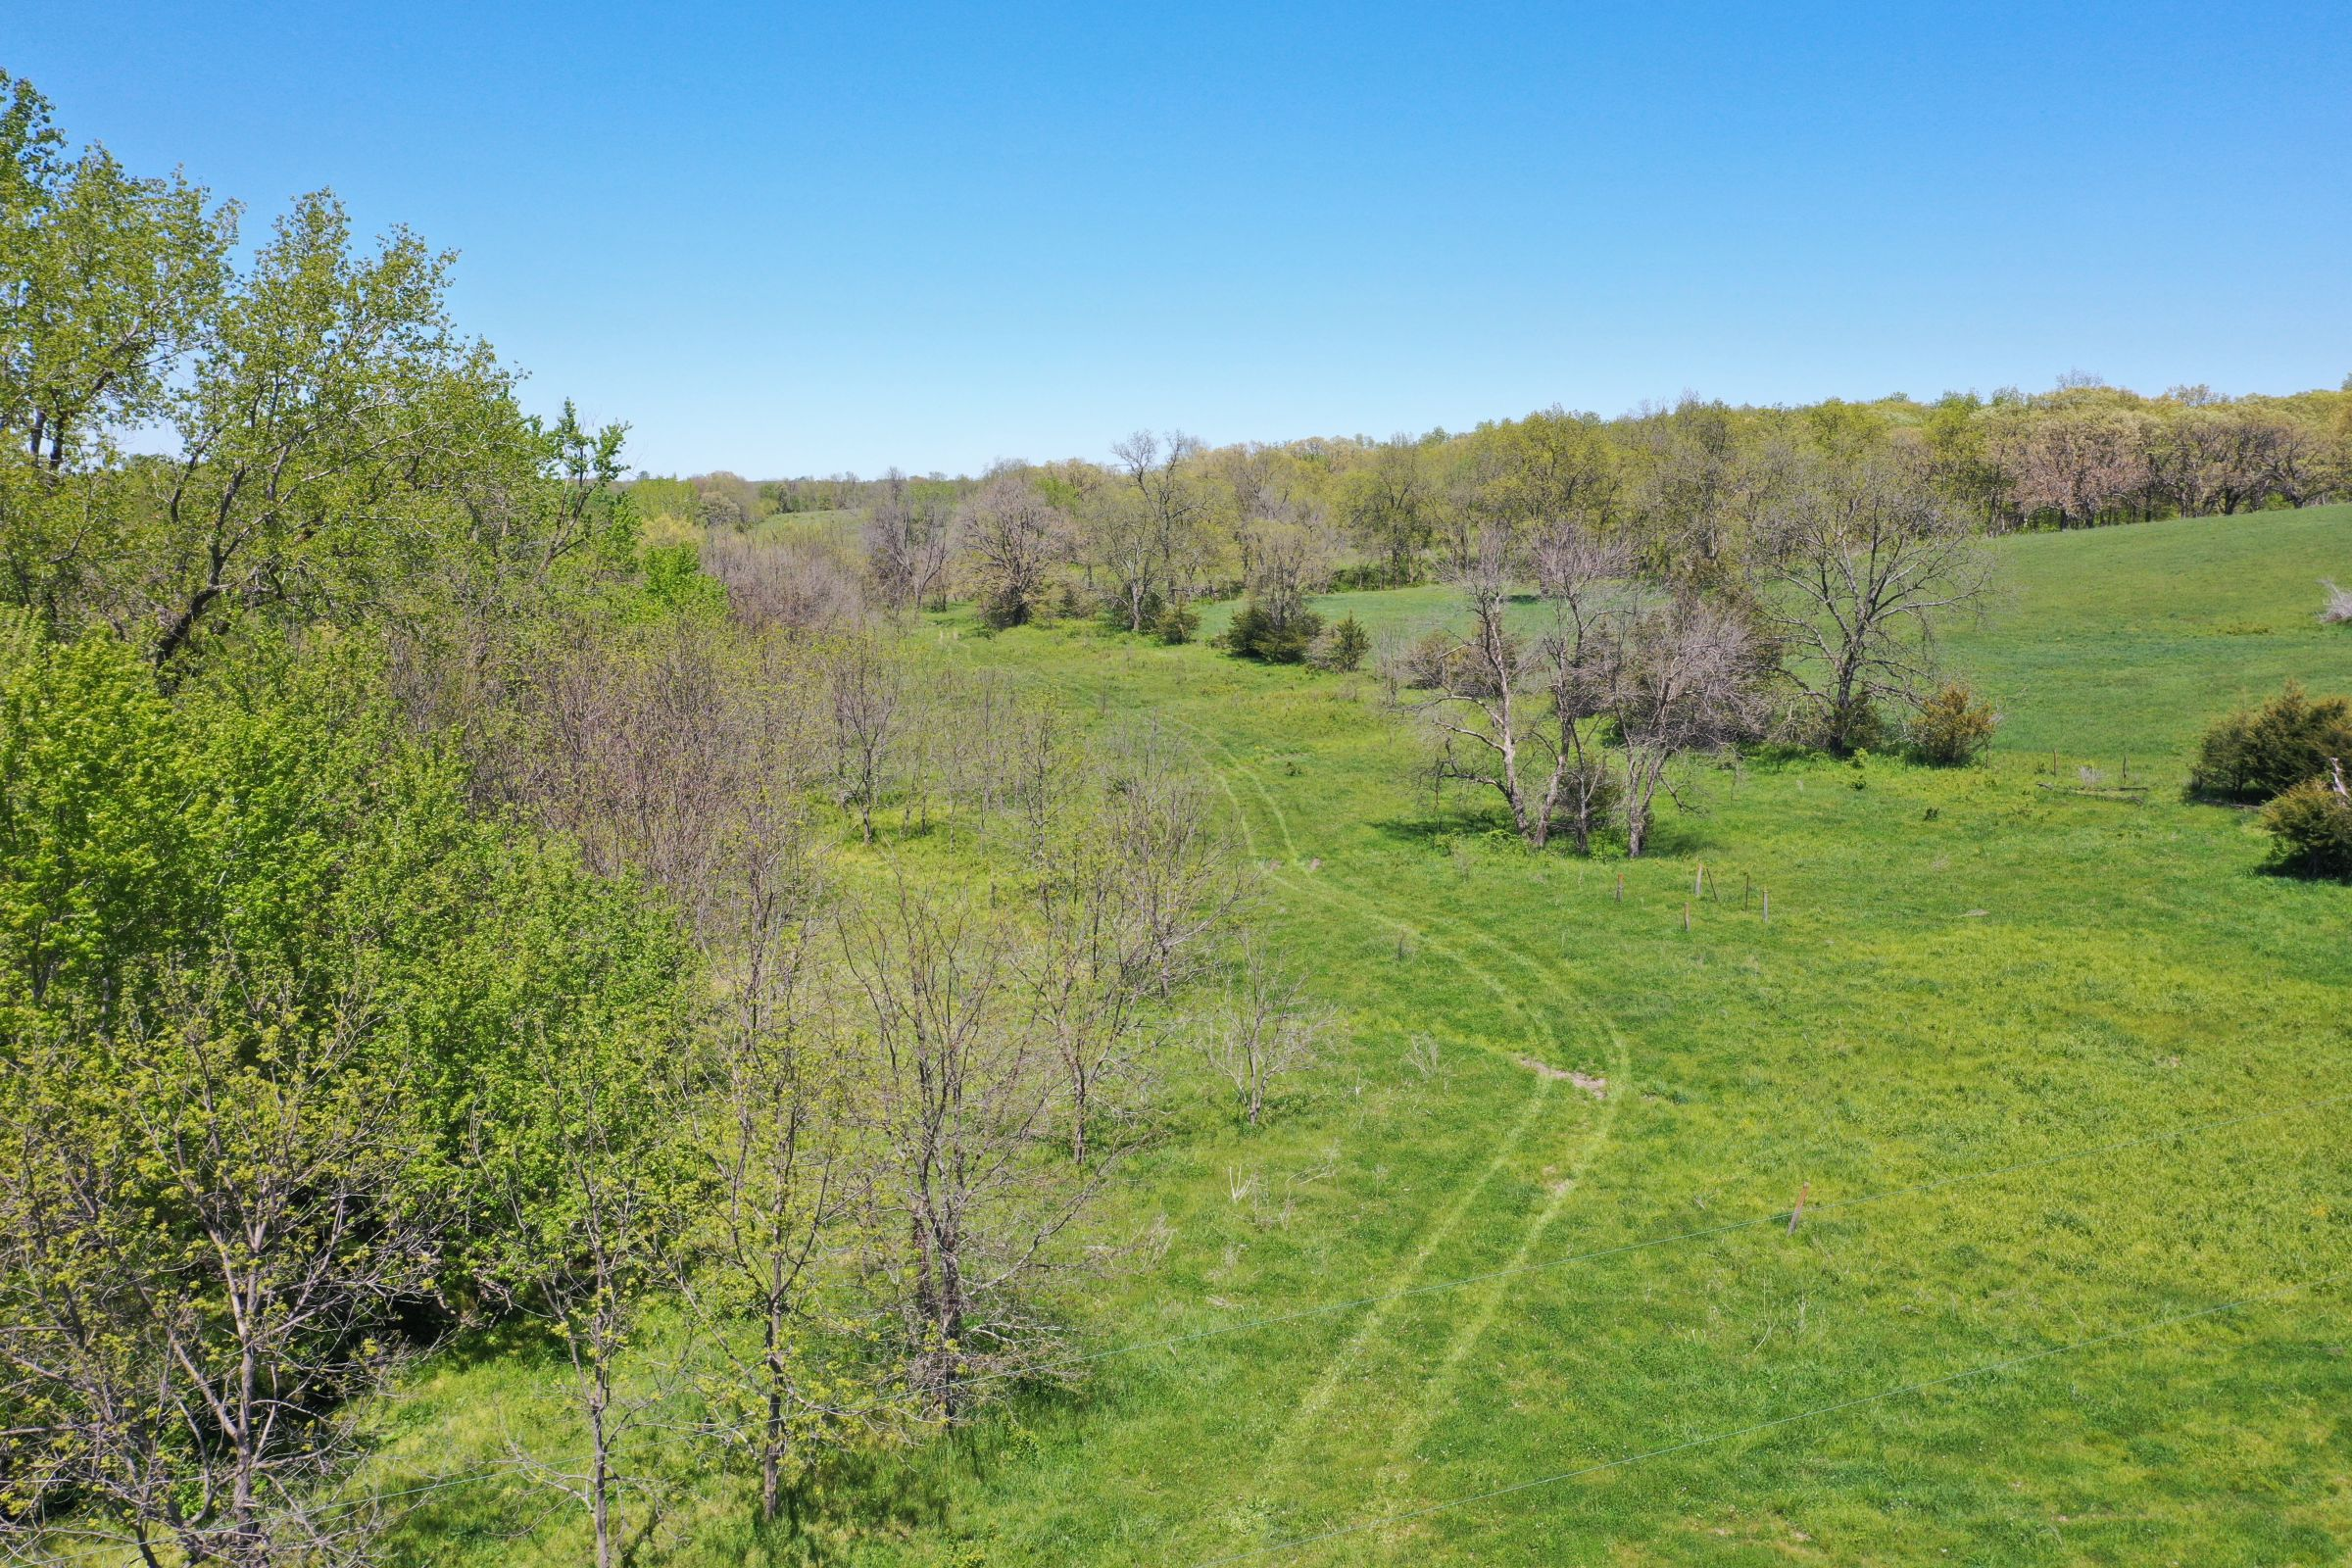 land-decatur-county-iowa-99-acres-listing-number-15525-1-2021-05-14-172507.JPG